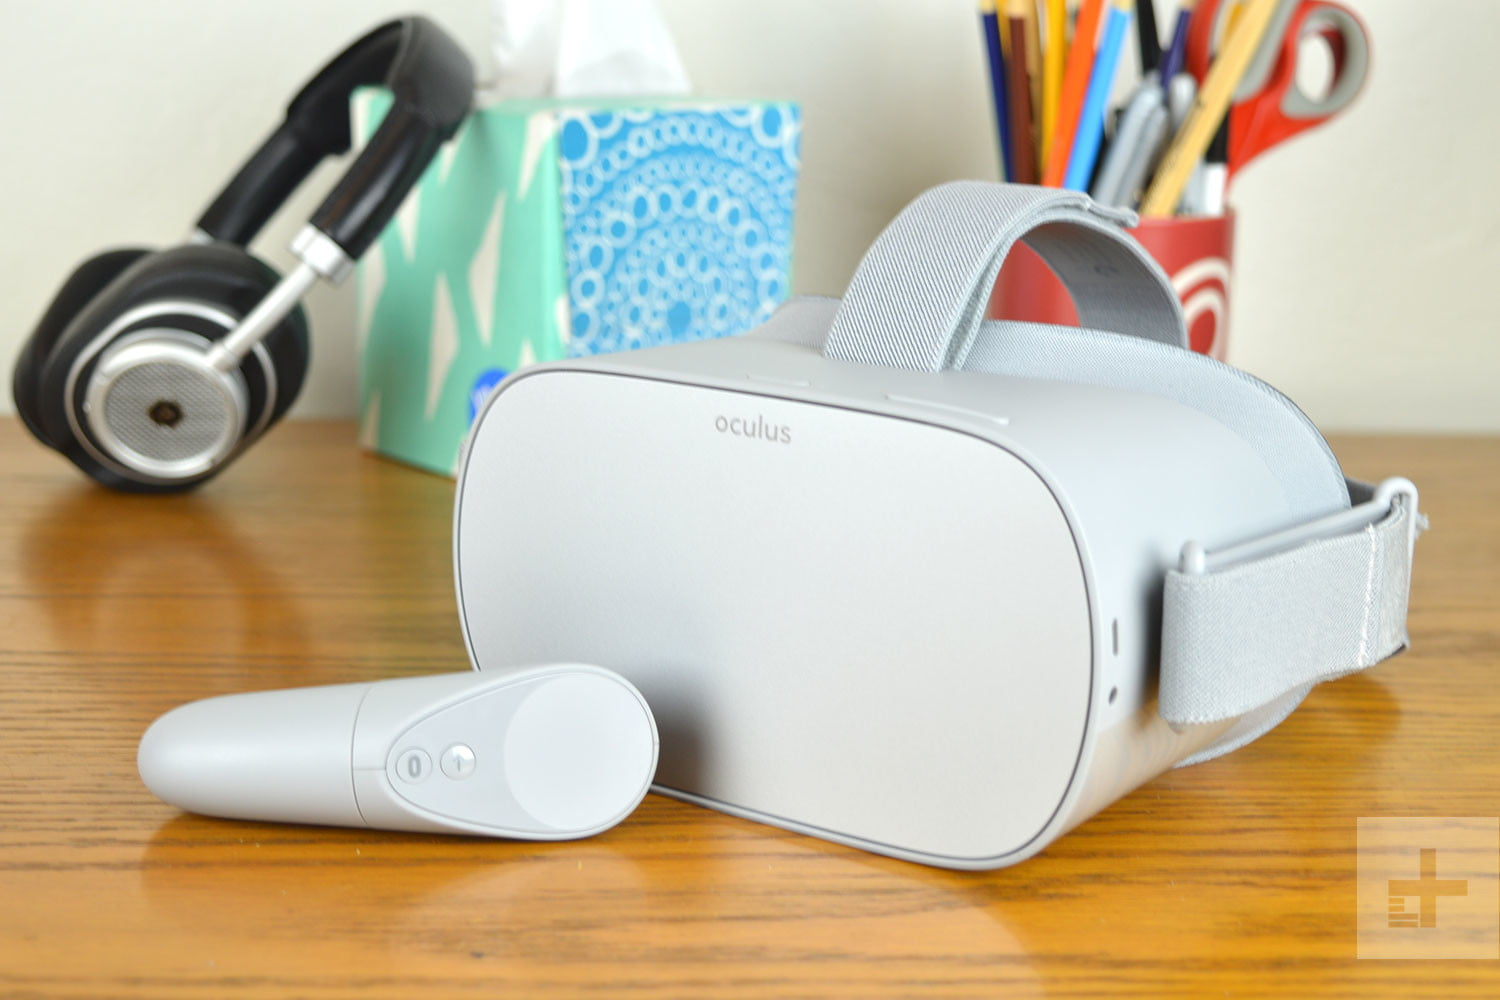 VR curious? The $200 Oculus Go is the perfect gateway